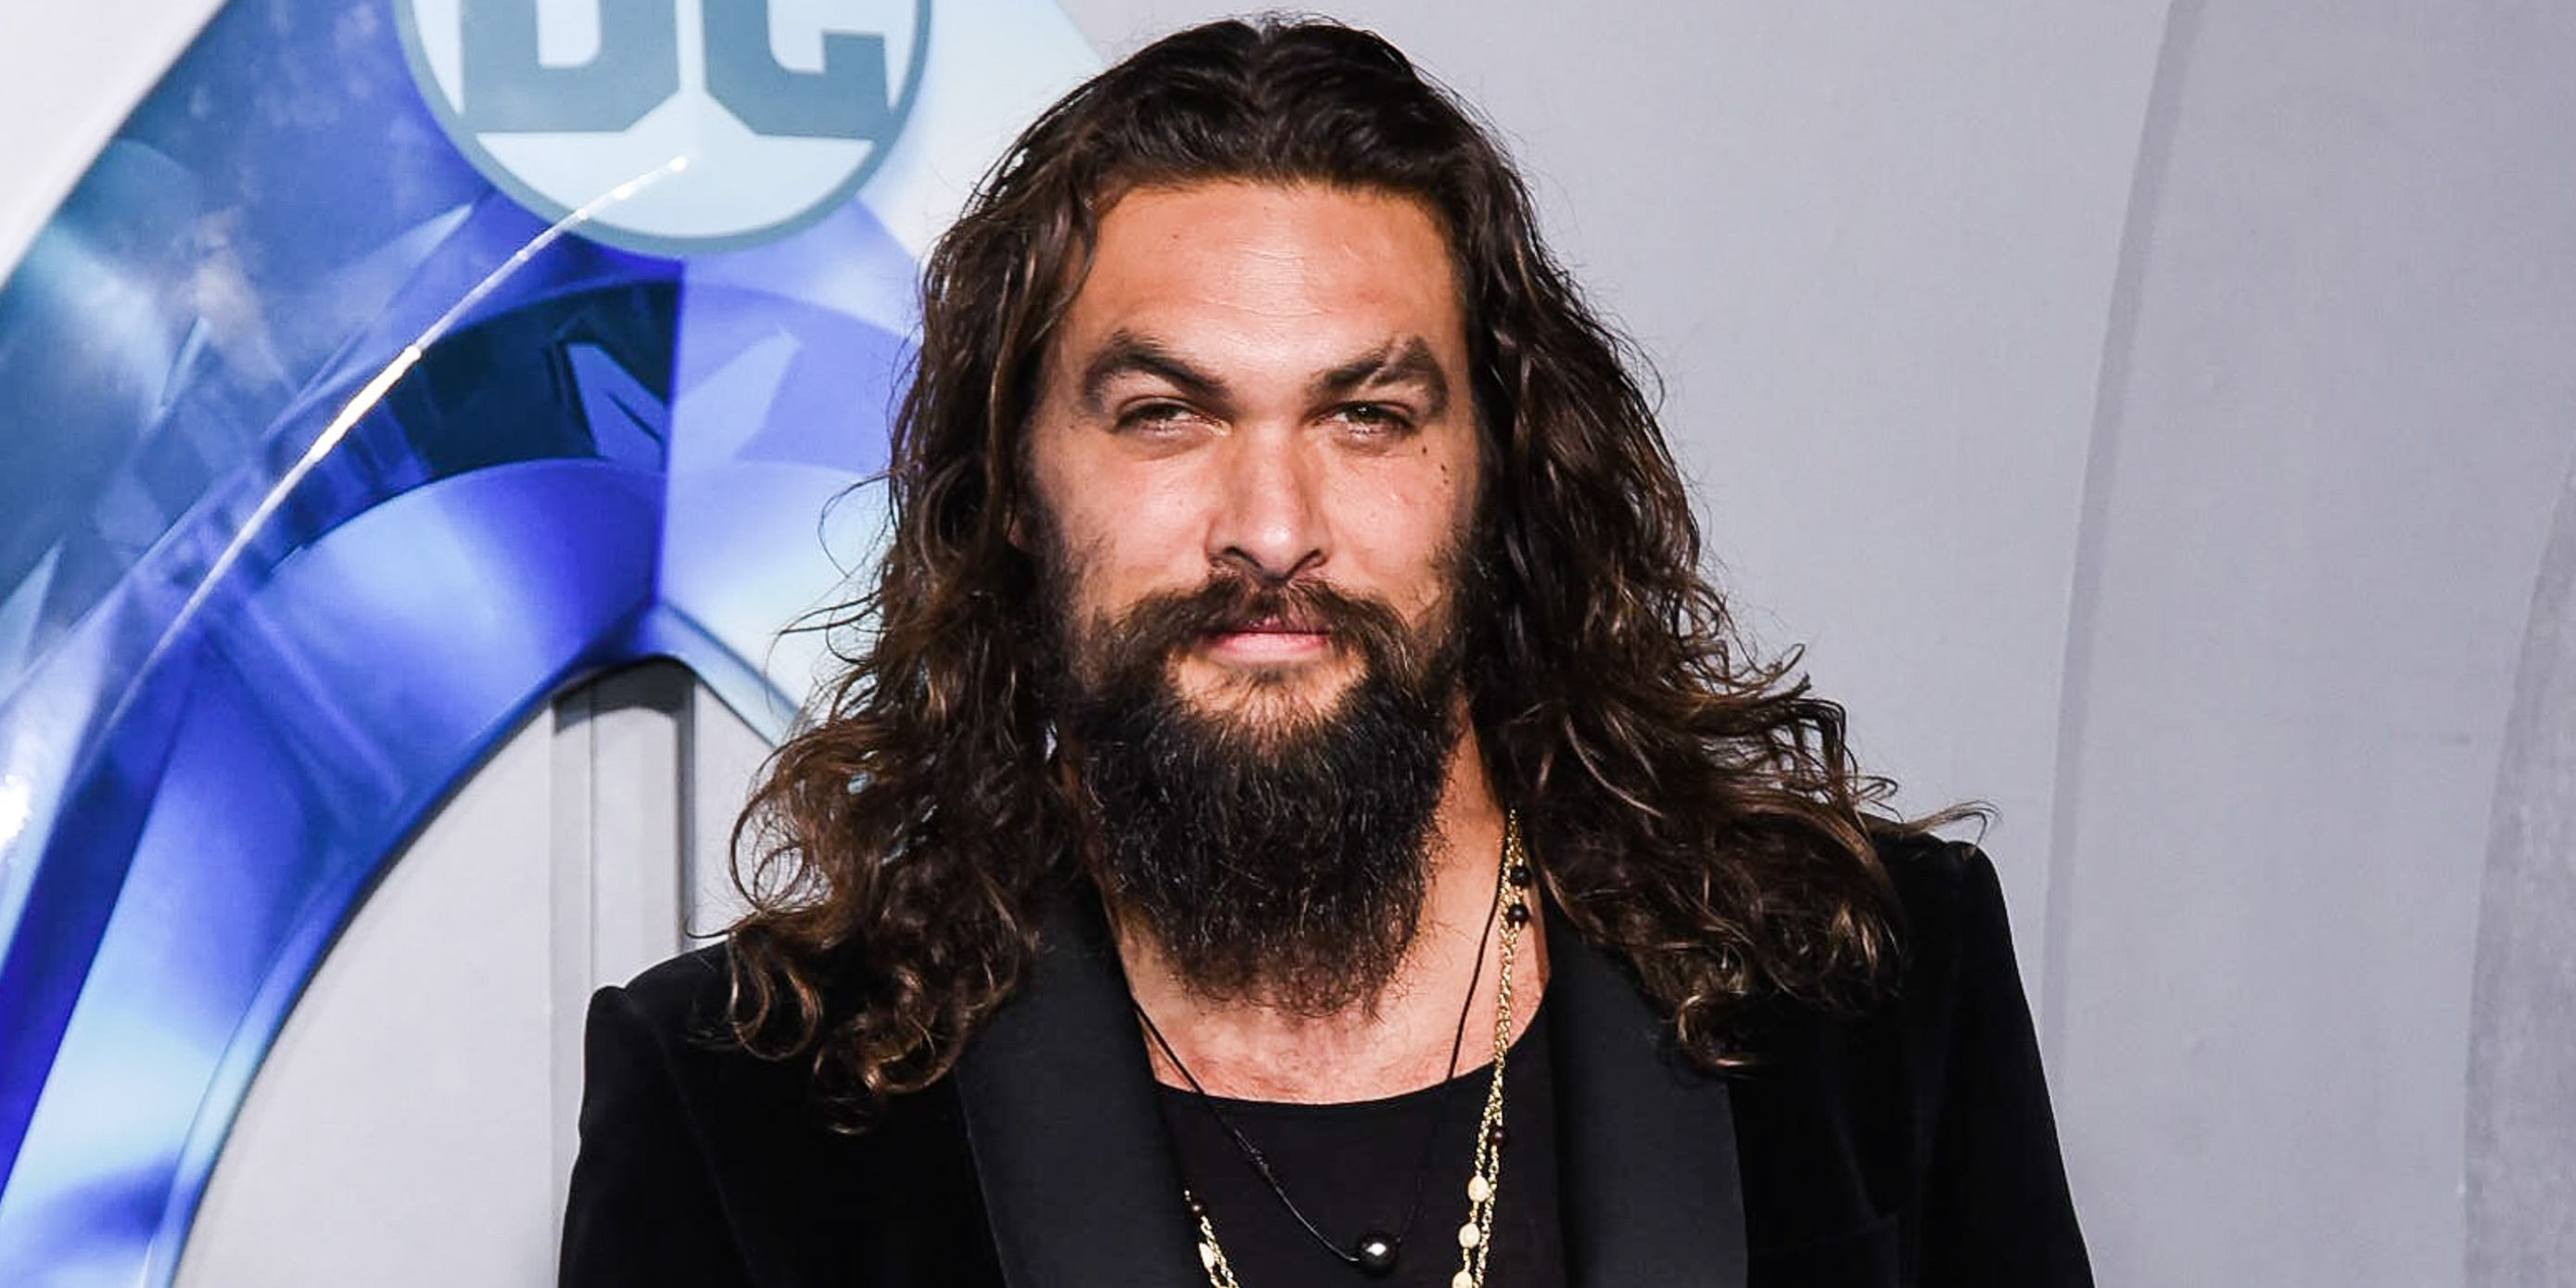 Guys, Jason Momoa Shaved His Beard and He Is Legit Unrecognizable